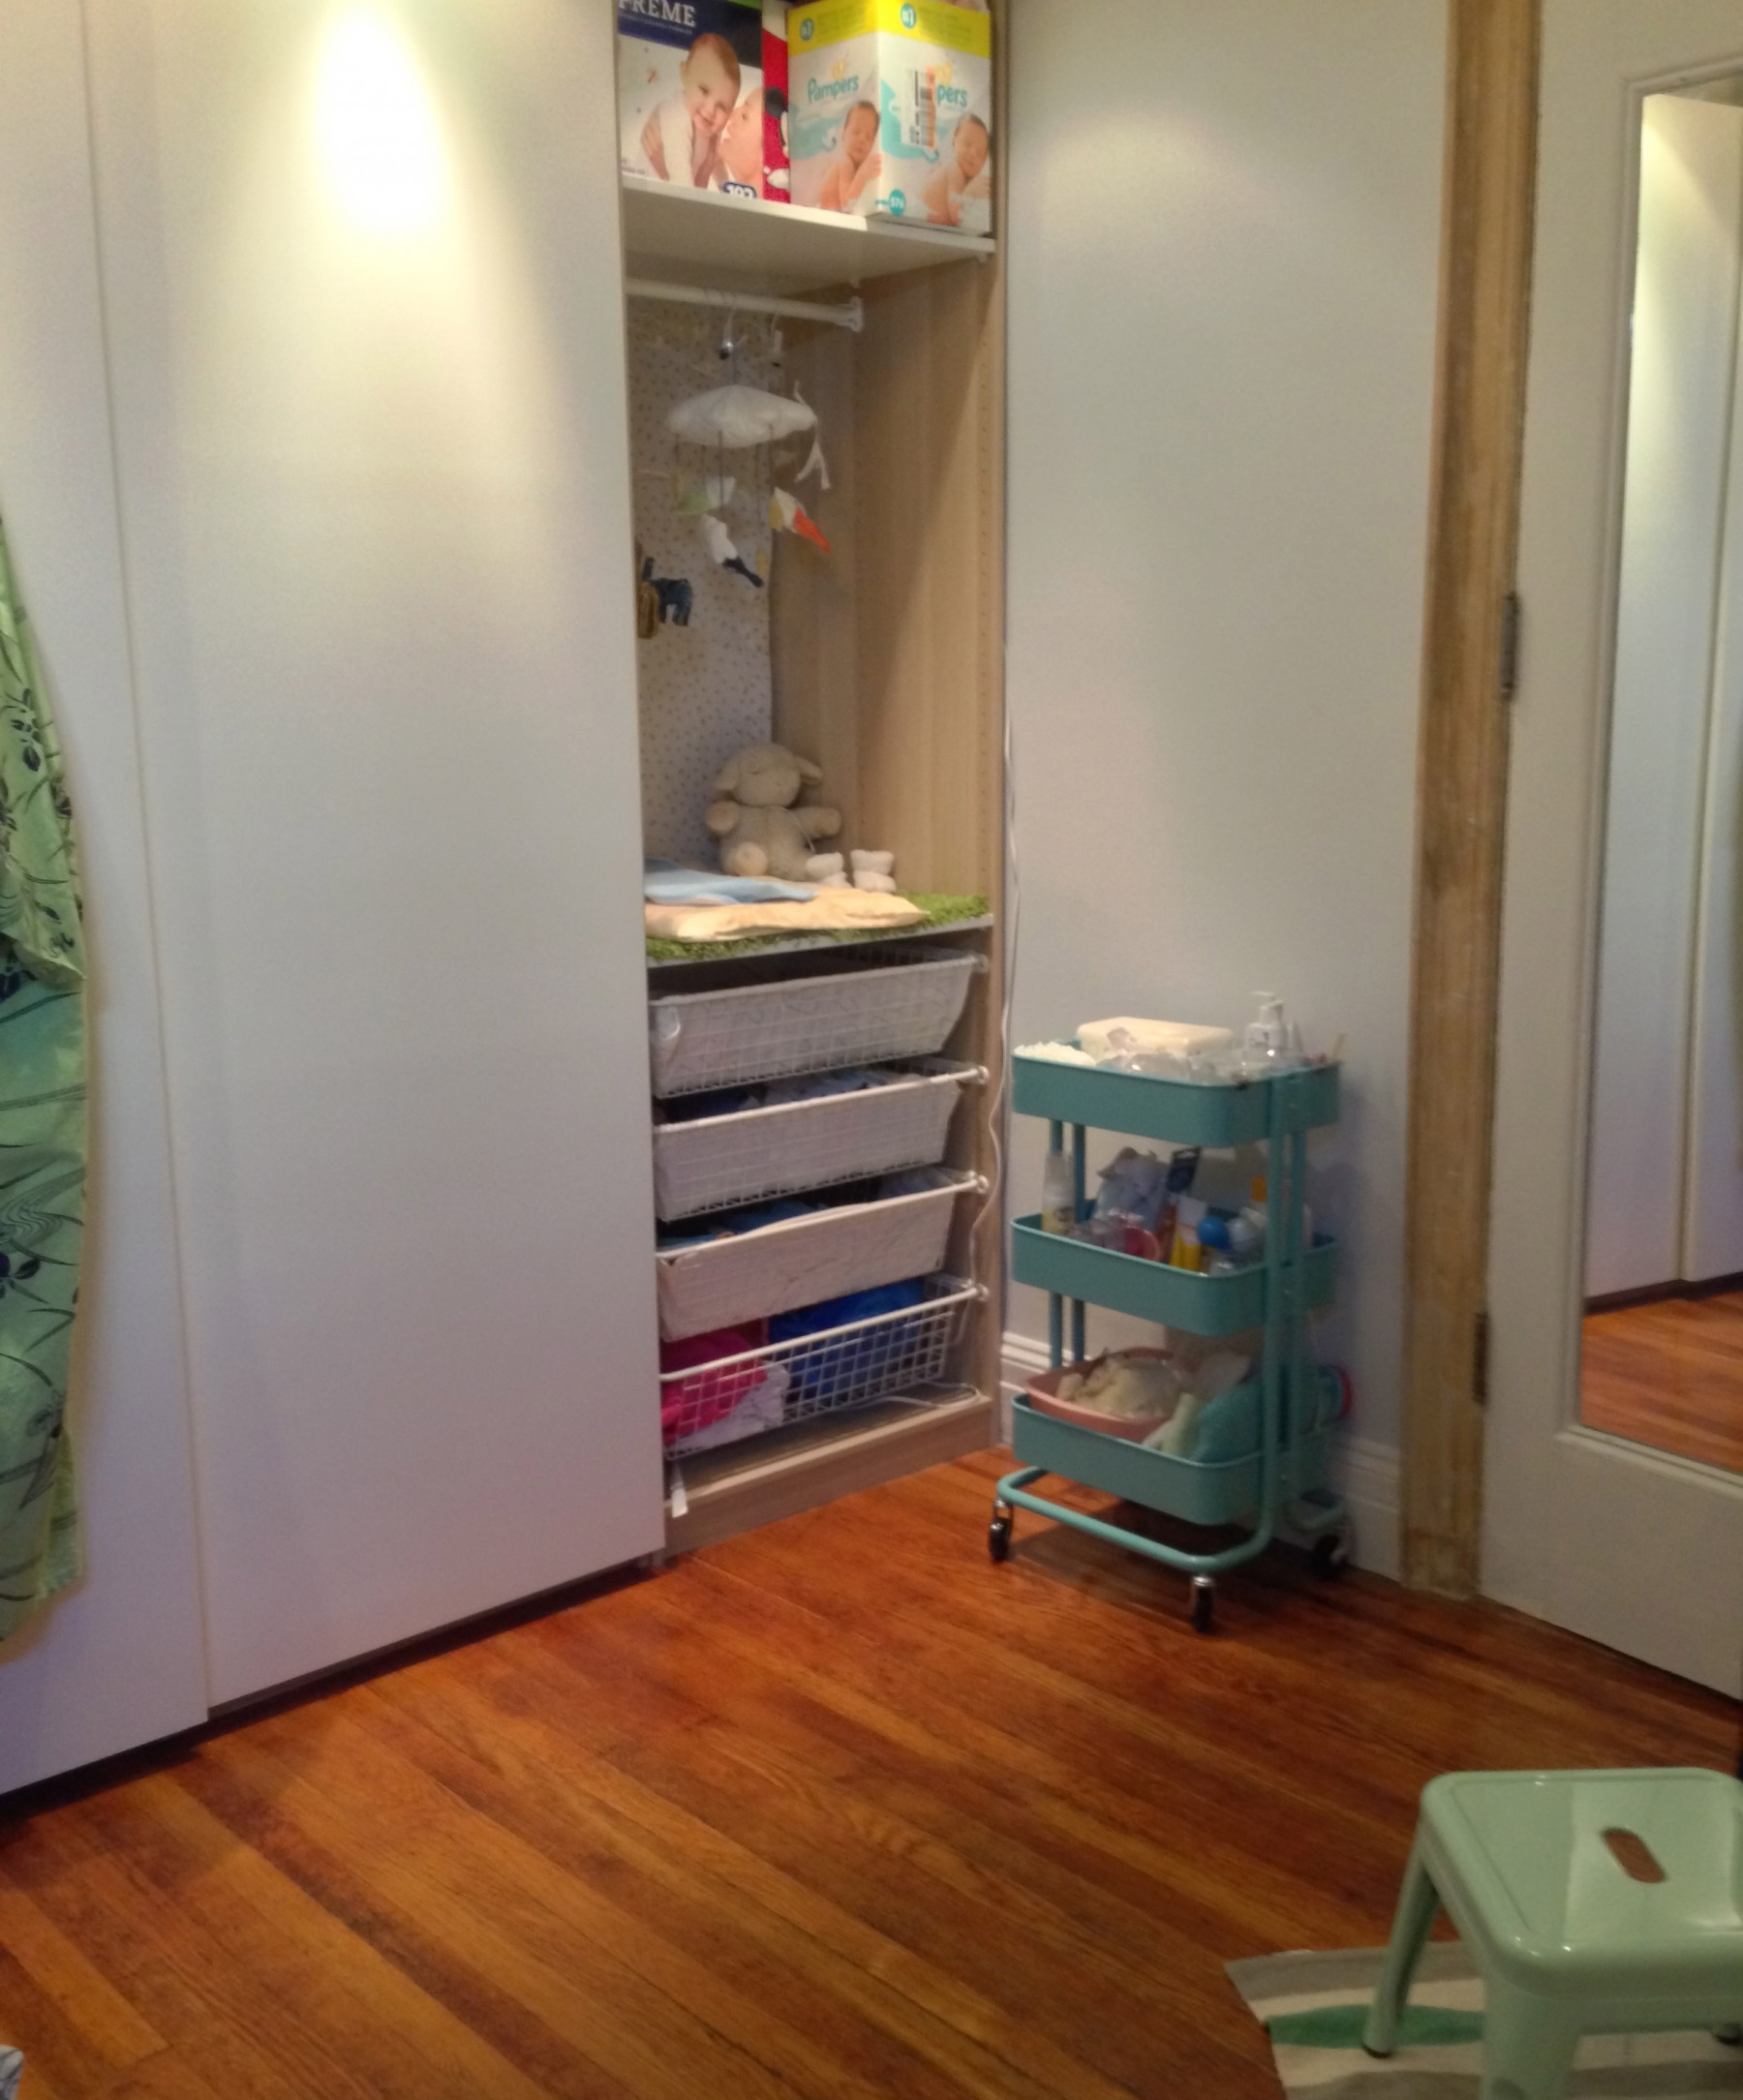 Included Storage For Bulky Items (Huge Boxes Of Diapers And